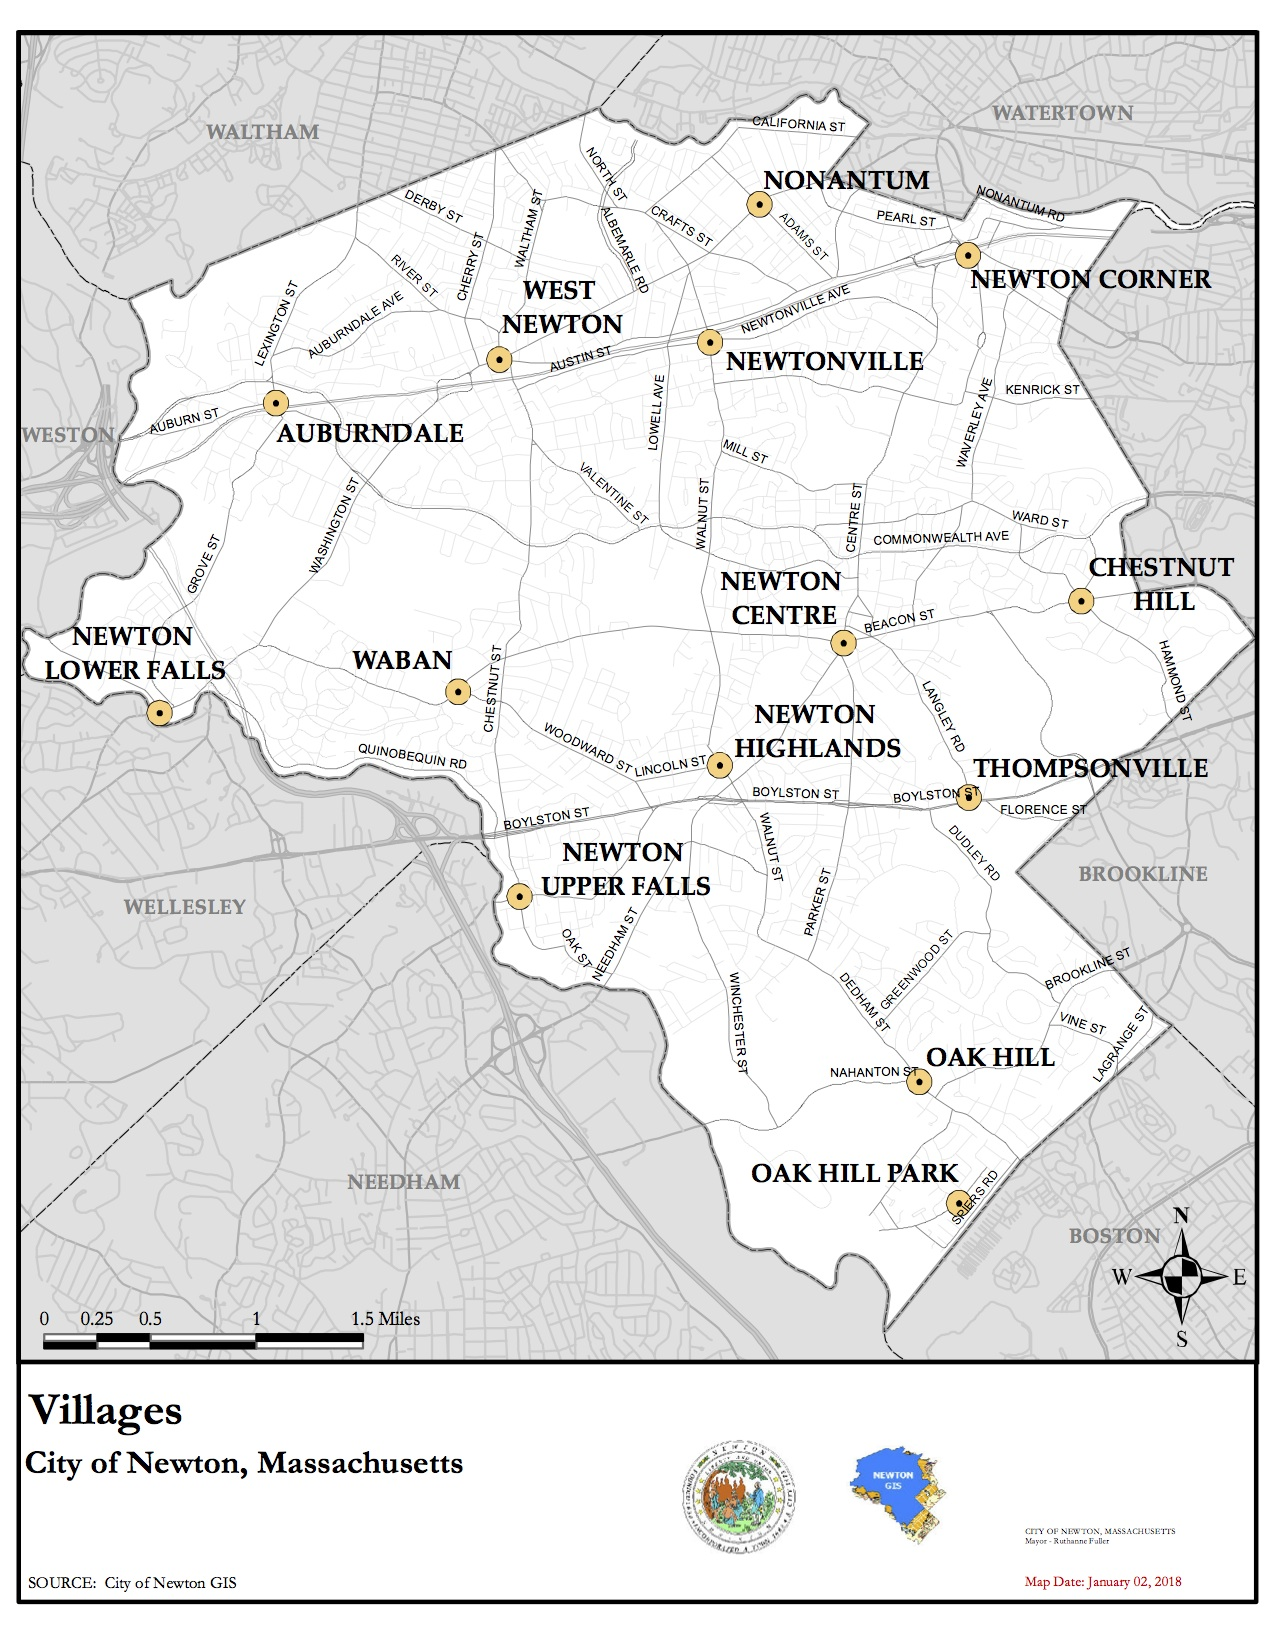 Map of Newton Villages and Neighborhoods